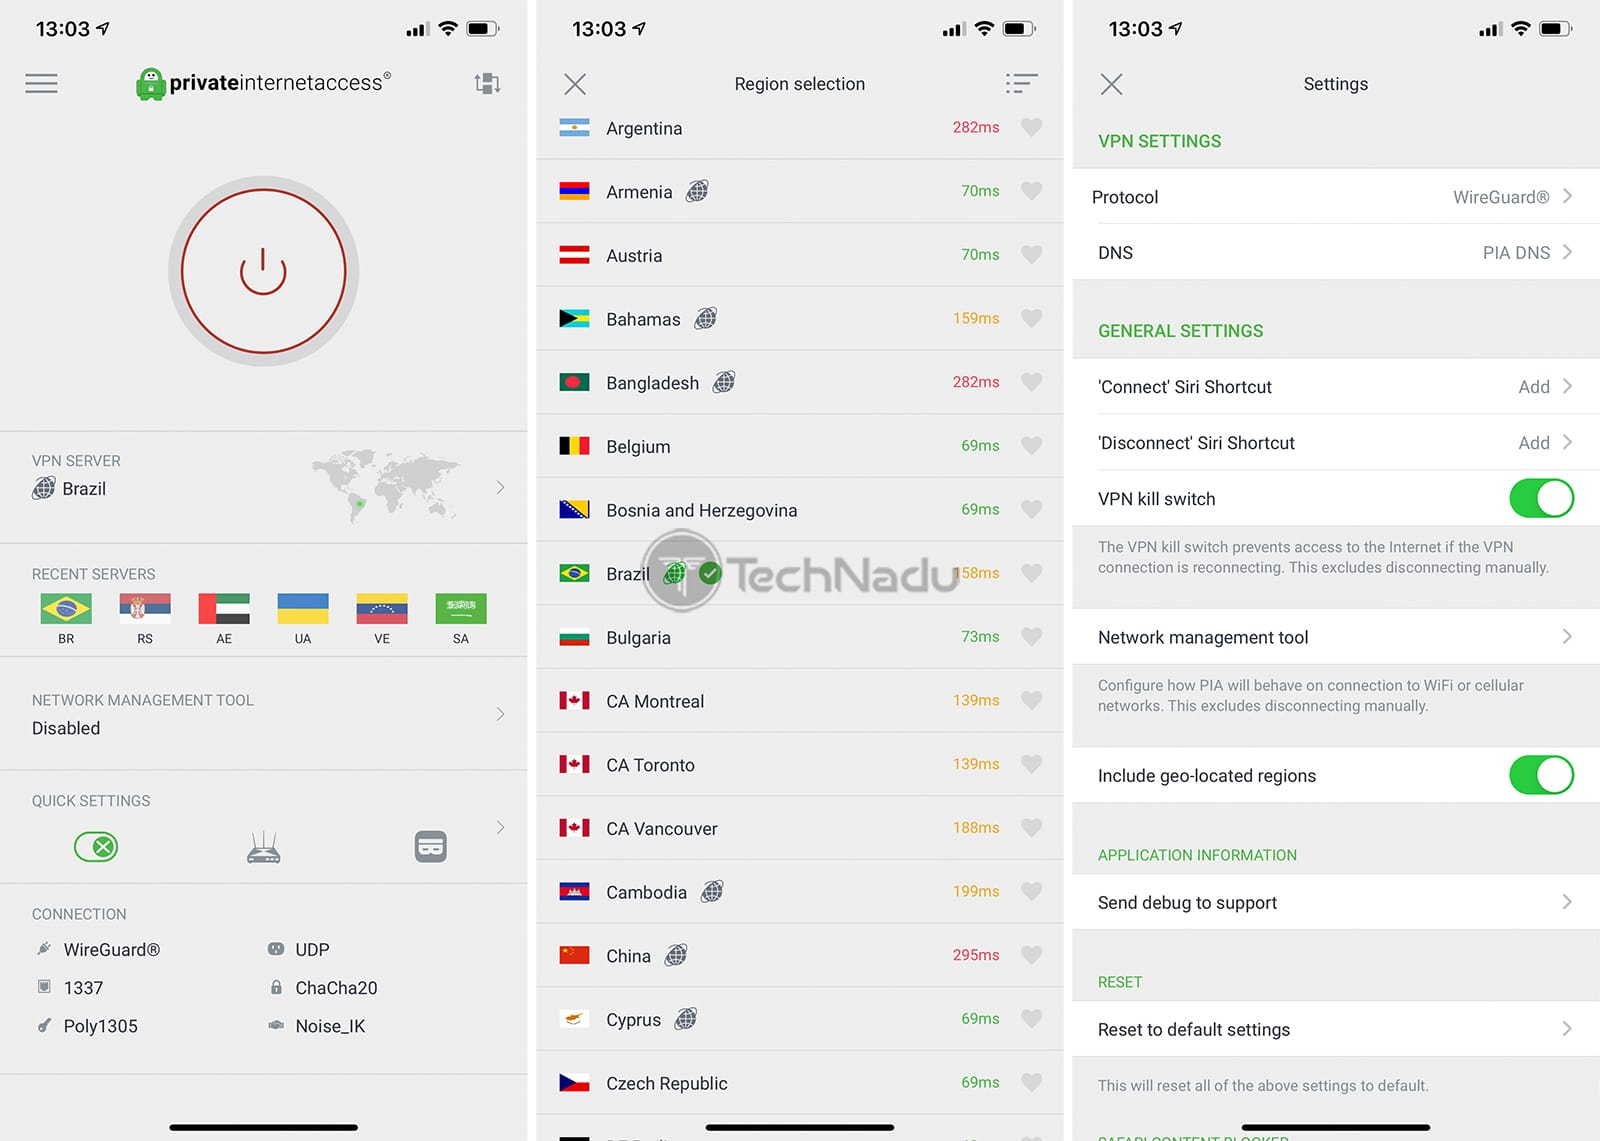 Private Internet Access VPN App Interface on iOS